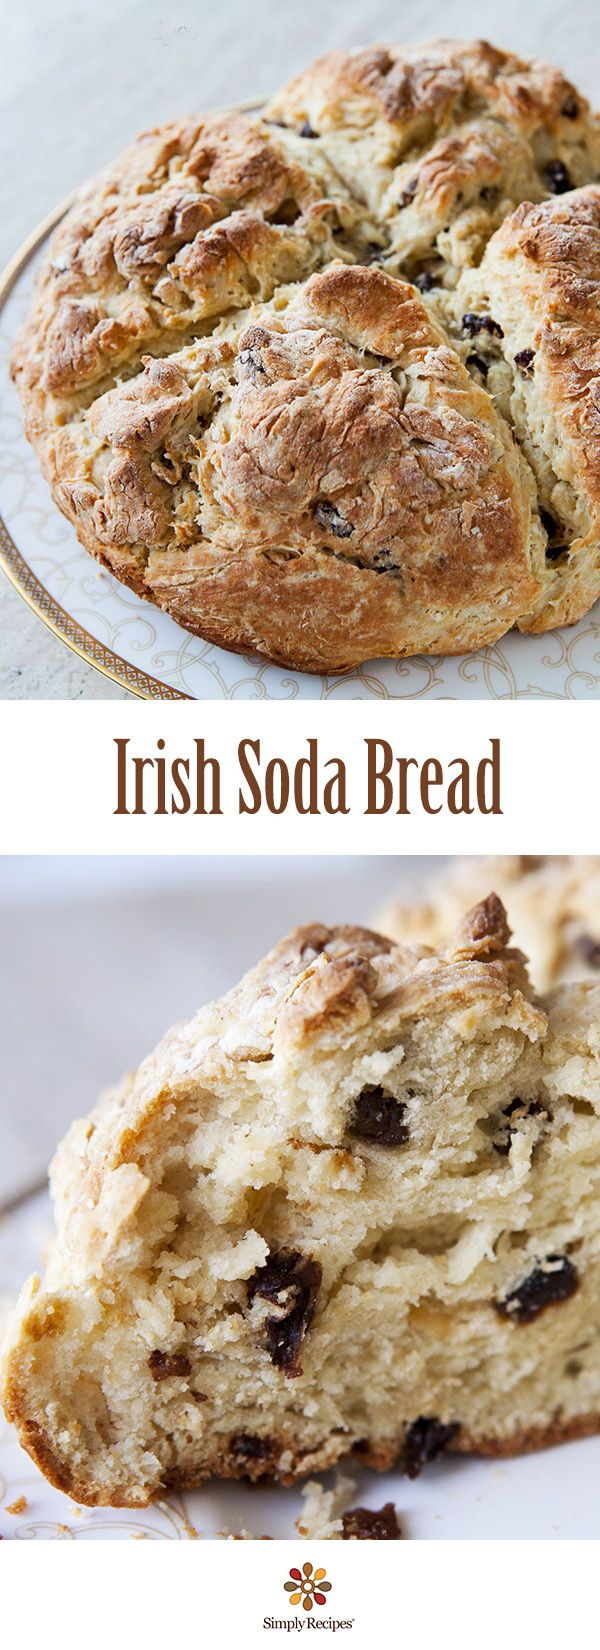 The BEST Irish Soda Bread! Quick and EASY too. All you need is flour, baking soda, salt, buttermilk to start, then you can fancify with raisins and egg. On SimplyRecipes.com